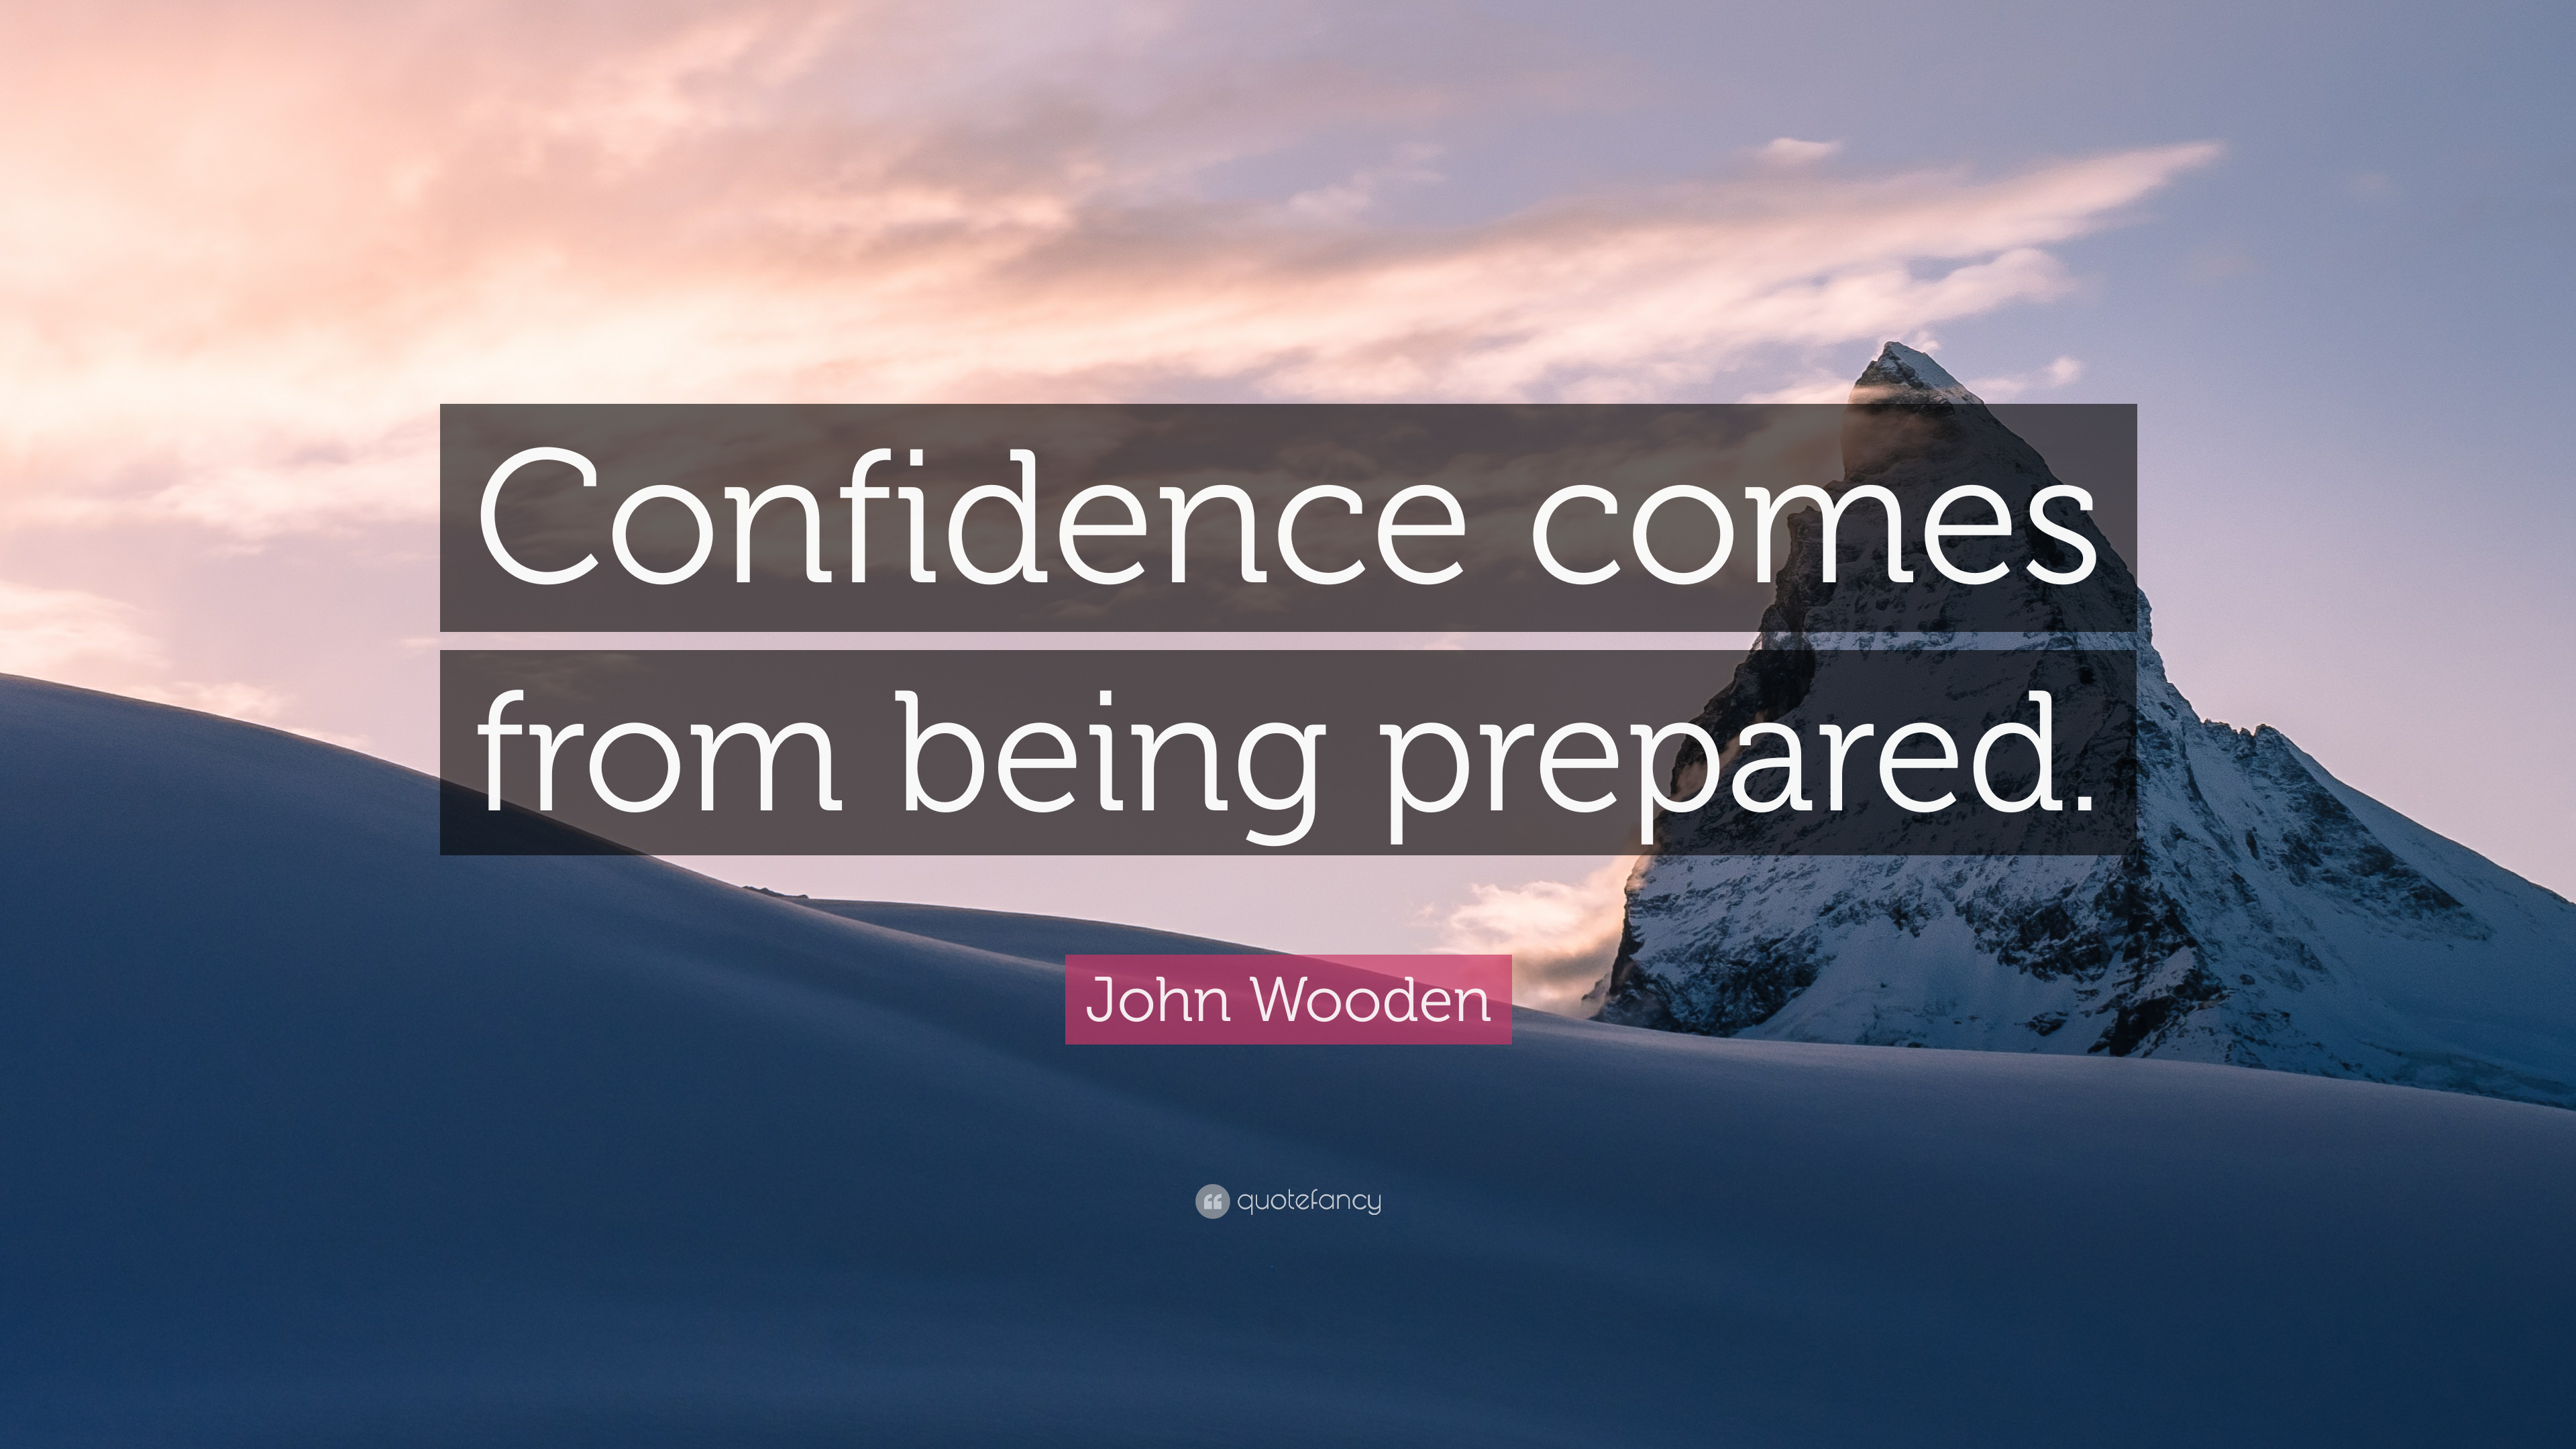 Theodore Roosevelt Wallpaper Quote John Wooden Quote Confidence Comes From Being Prepared